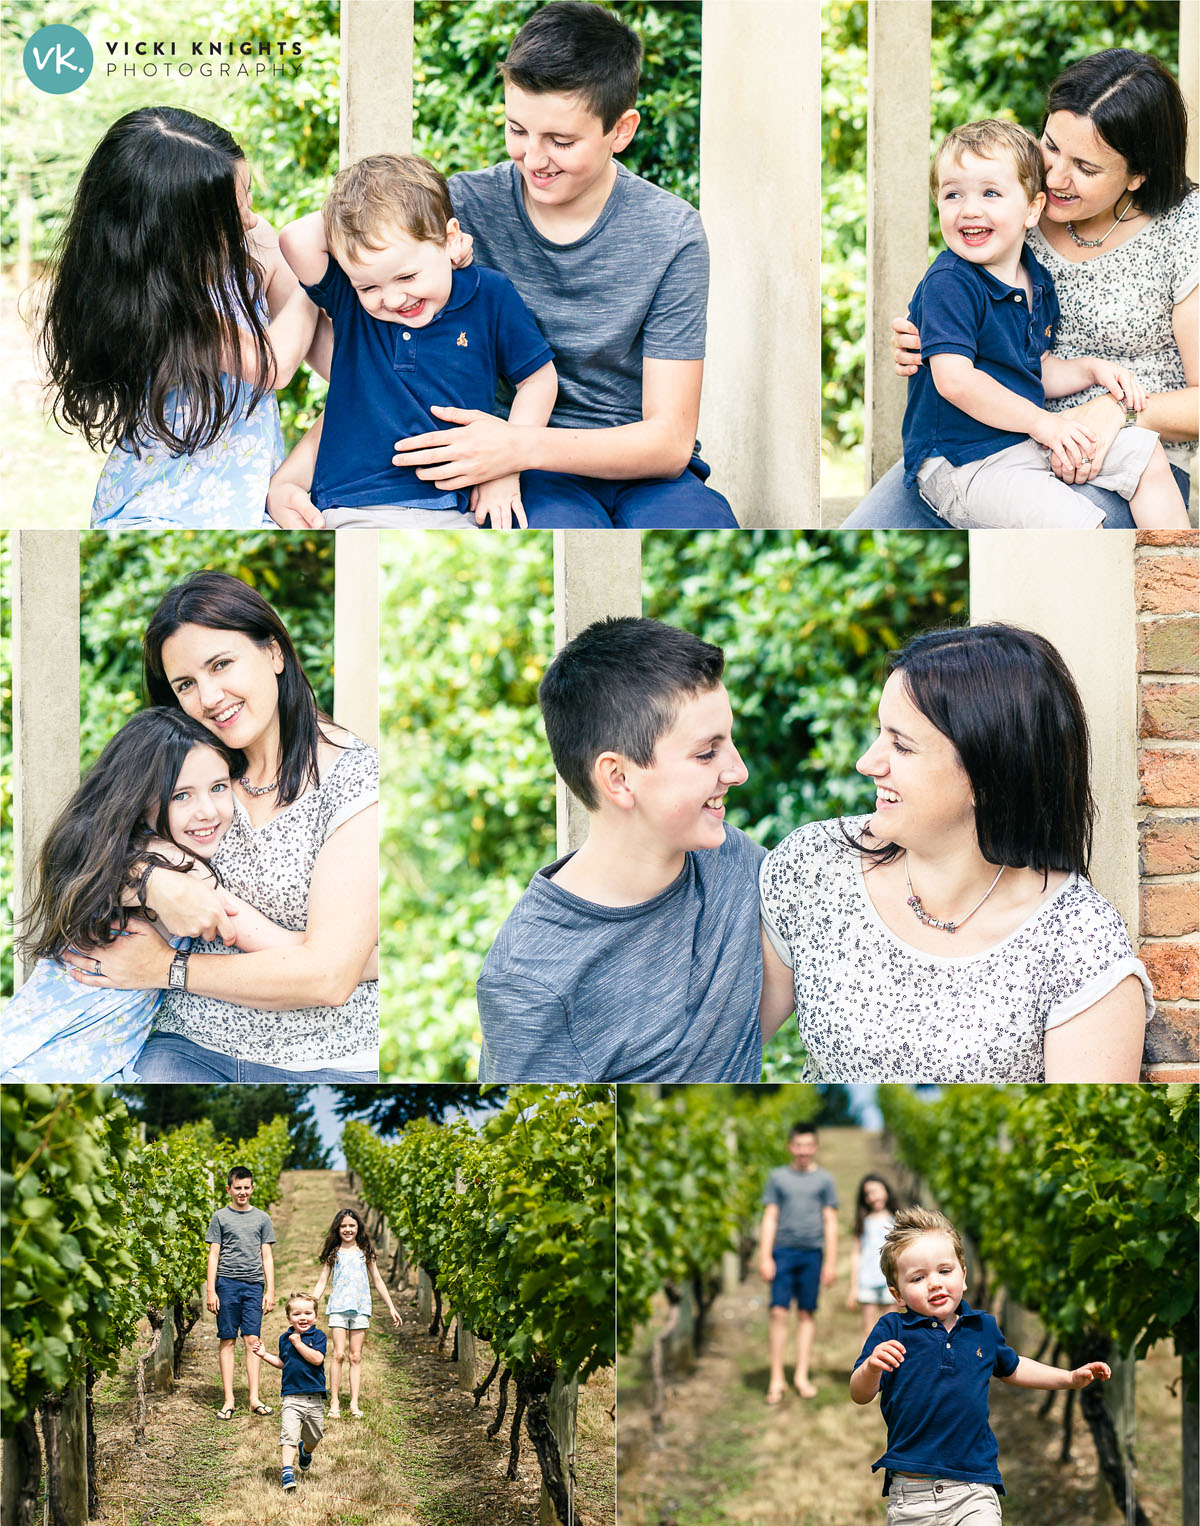 cobham-family-photo-shoot-vicki-knights